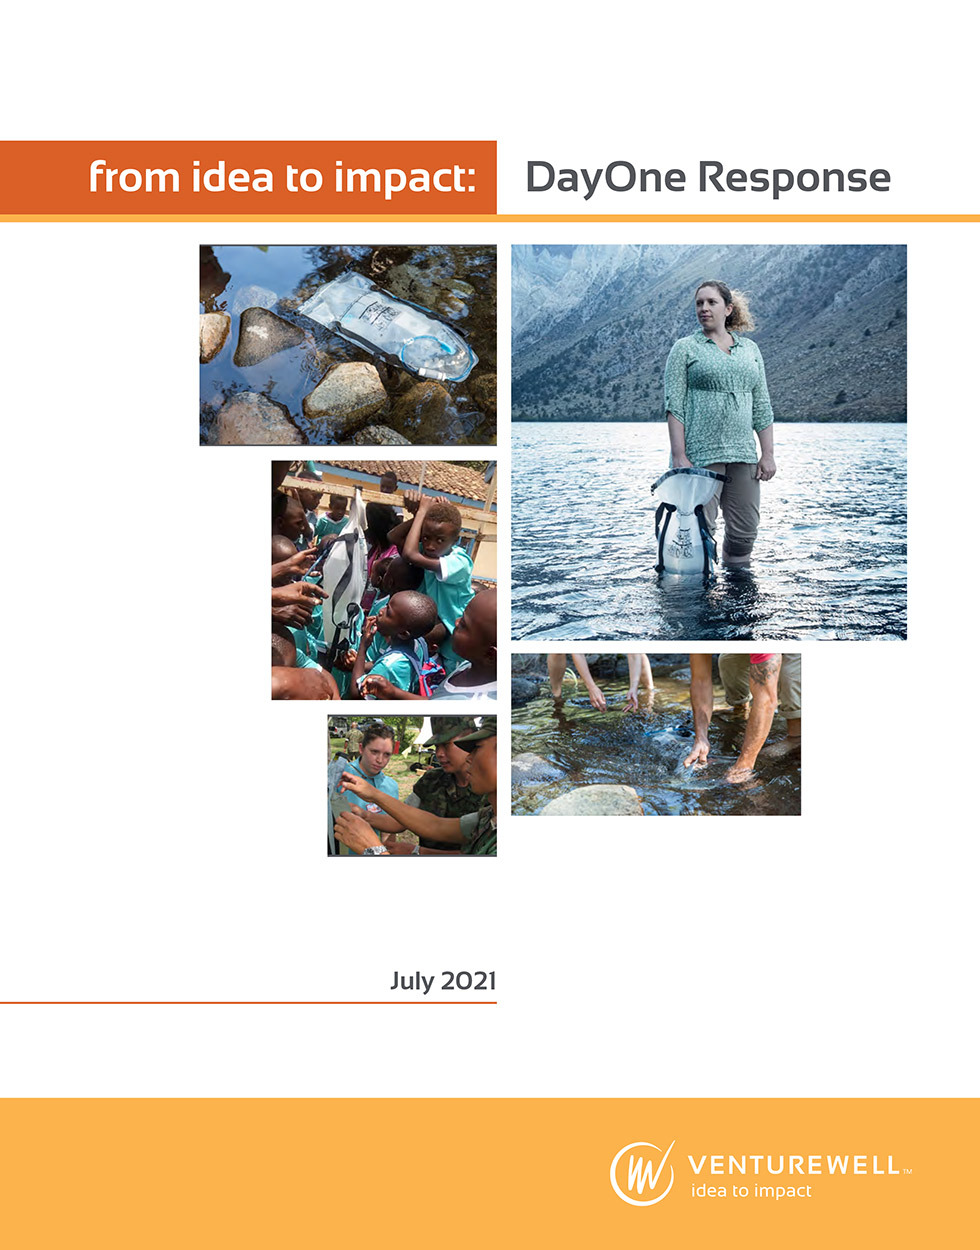 From Idea to Impact: DayOne Response